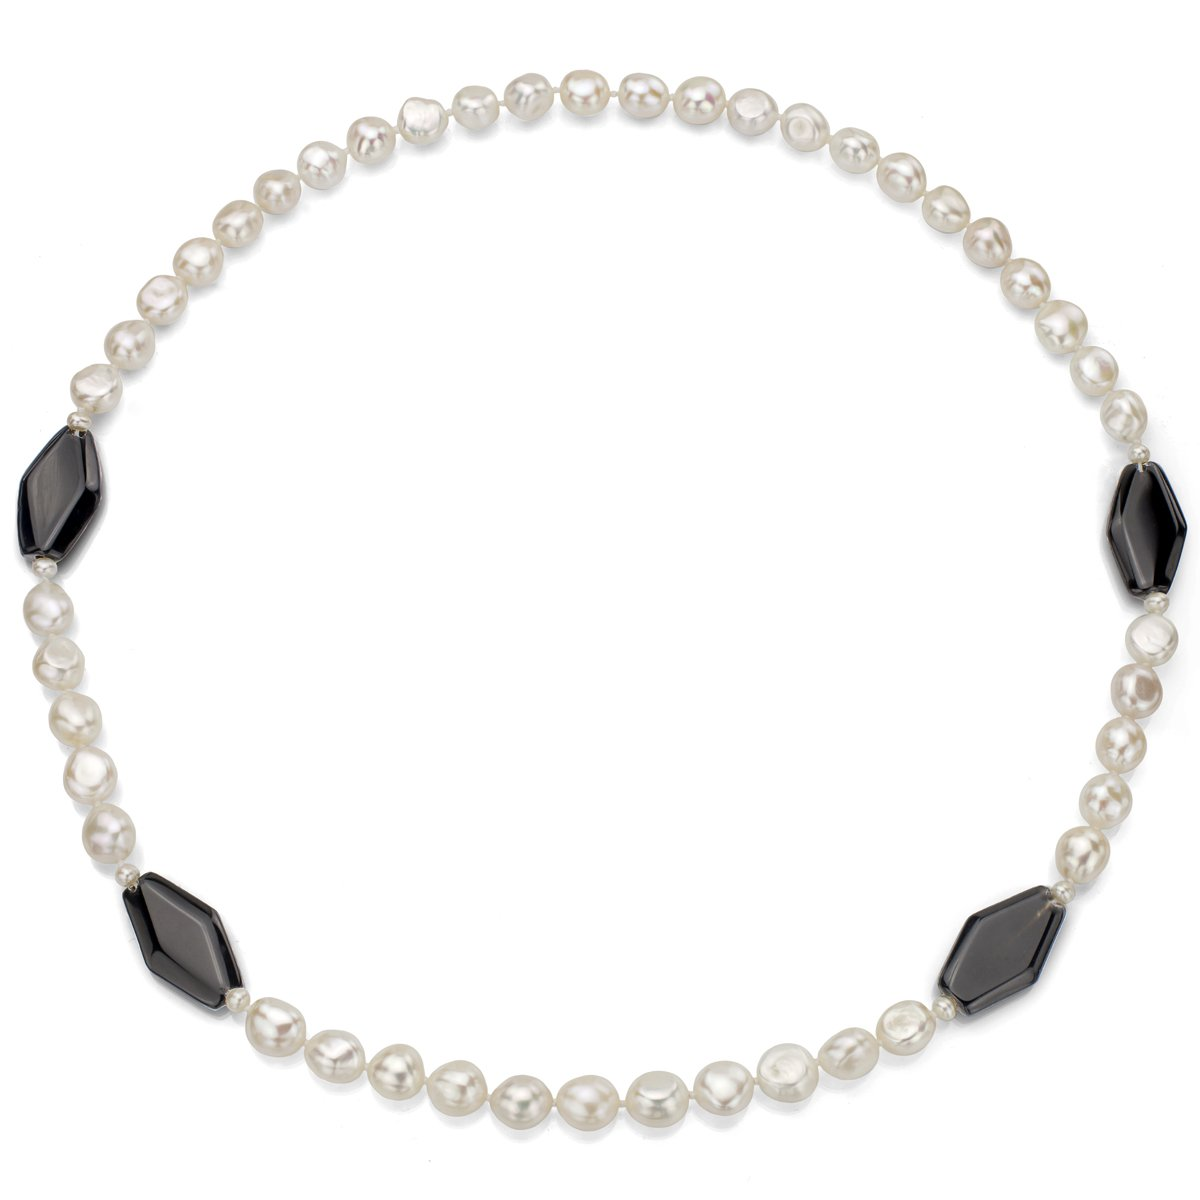 28 La Regis Jewelry 11-11.5mm and 4-4.5mm White Freshwater Cultured Pearls with 16x30 Simulated Black Onyx Necklace